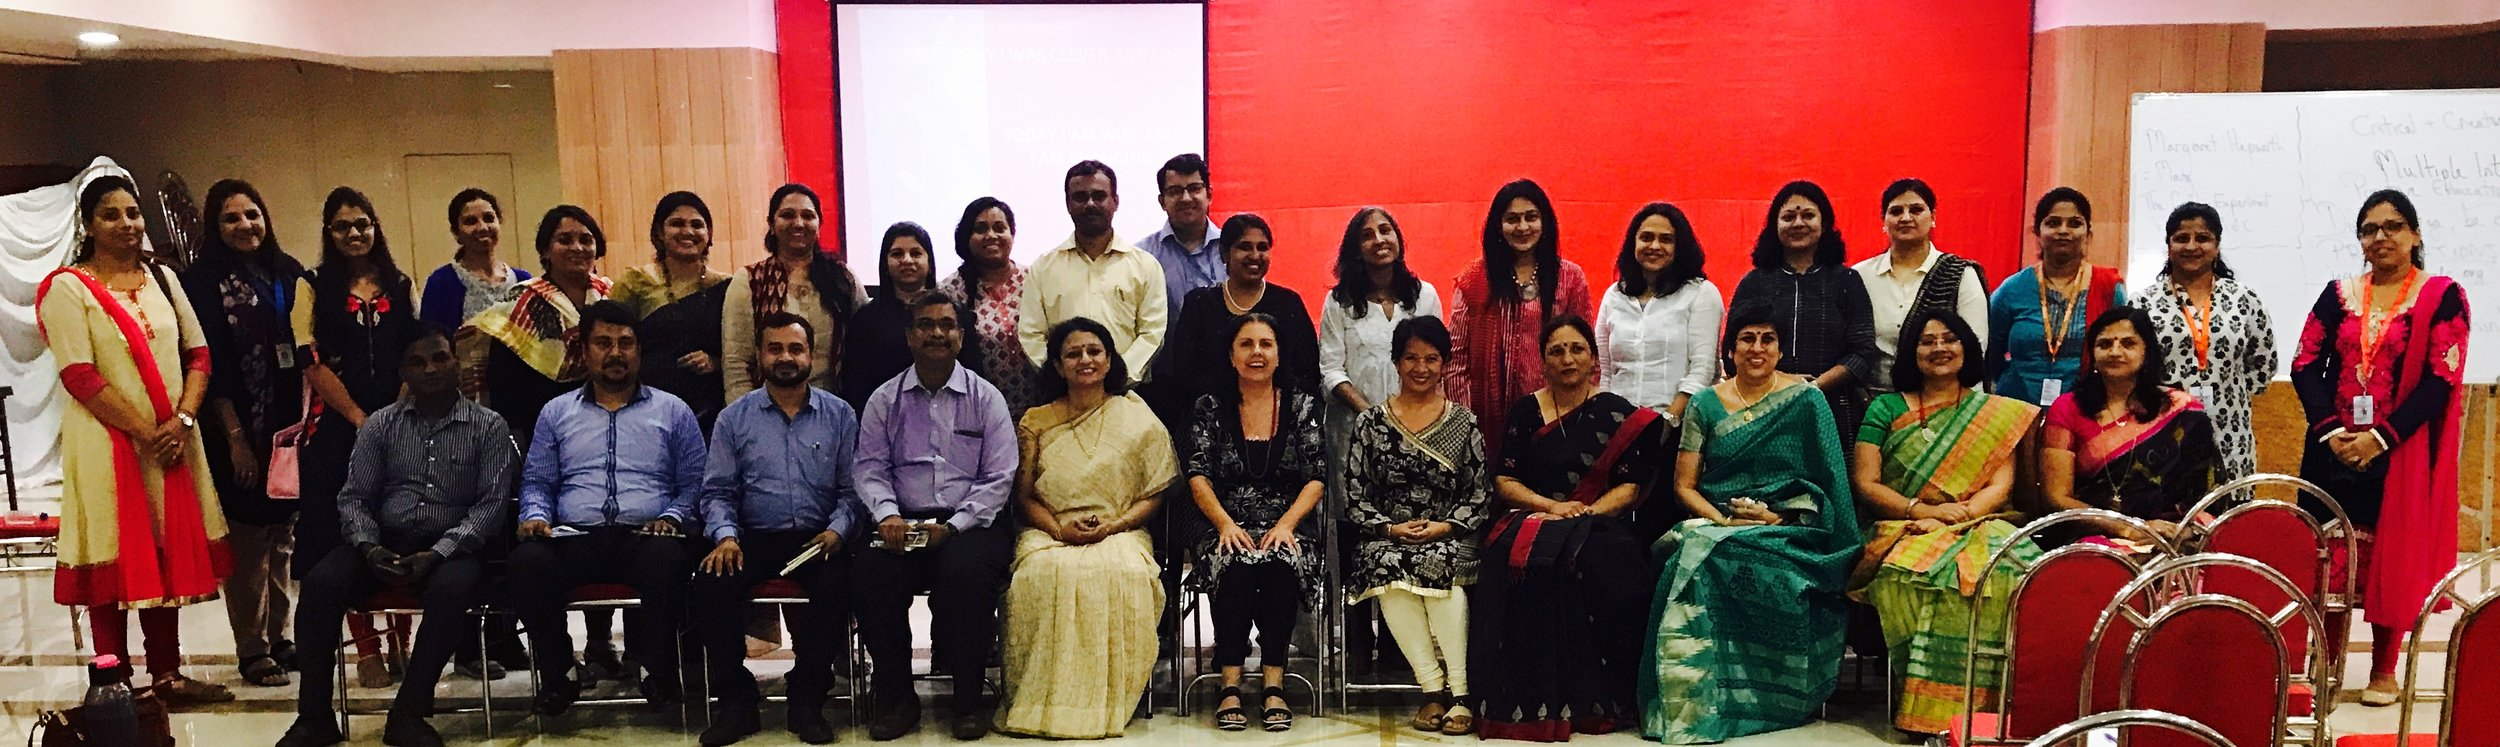 Global Citizenship - it starts with us! teacher training workshop, Mumbai.